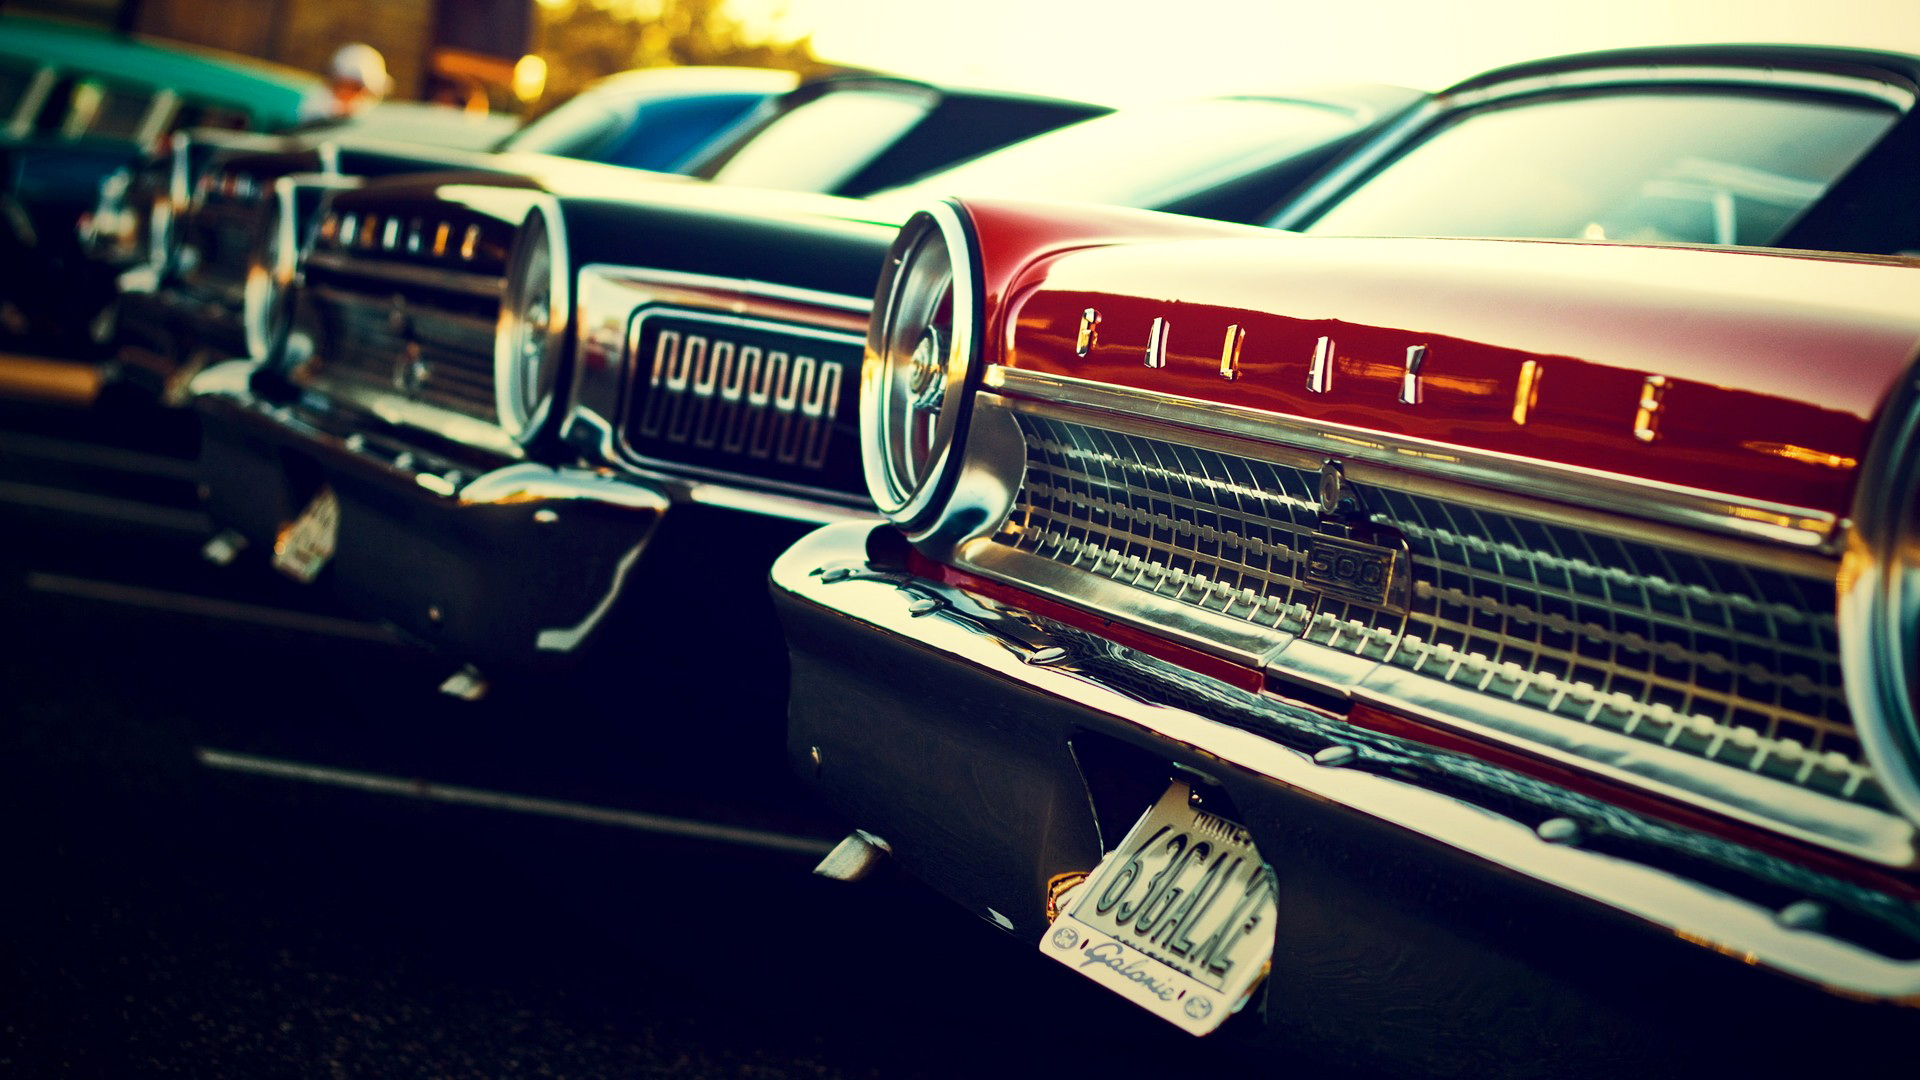 classic-cars-wallpaper-1920x1080-Wallpapers-HD-1080p-Desktop-...